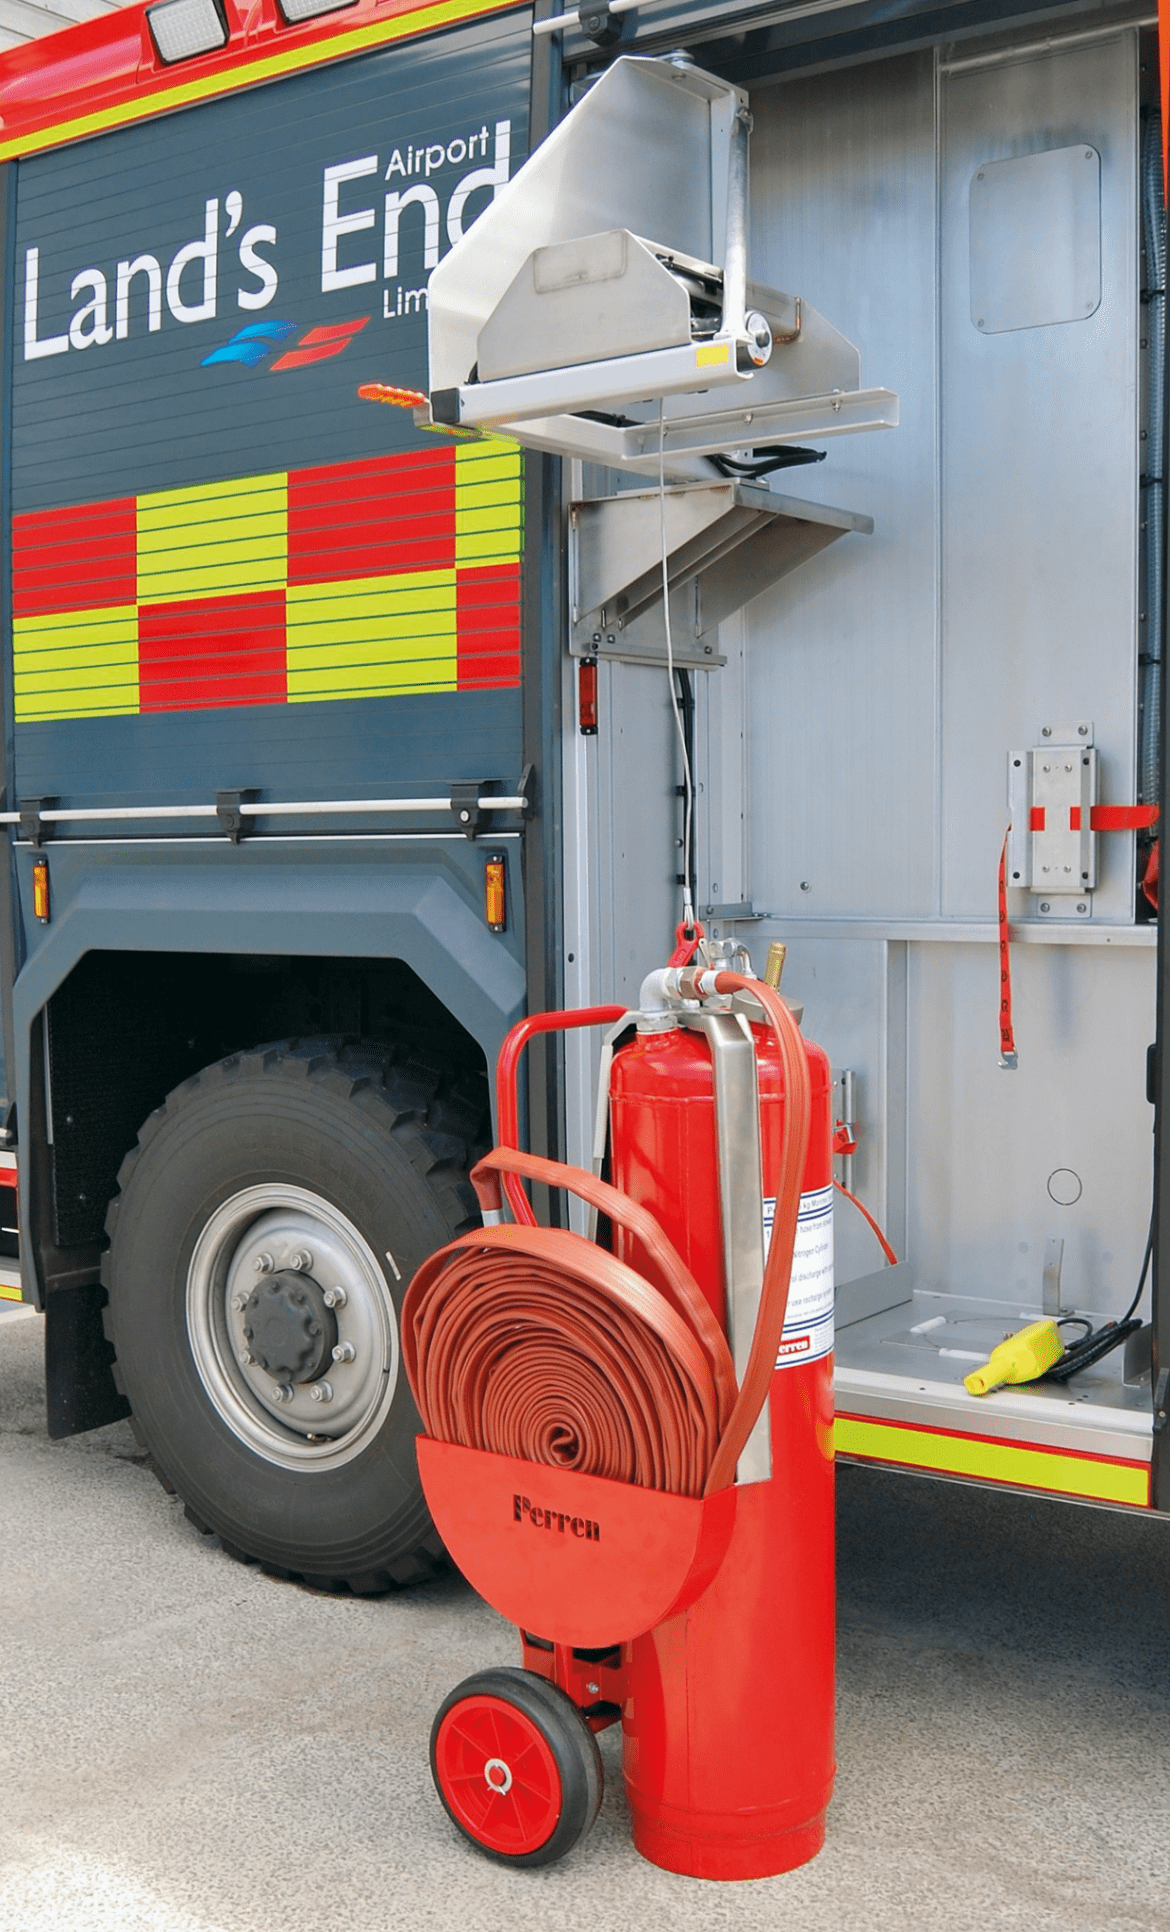 The 75kg DCP trolley lowered by an innovative compact electric winch system.